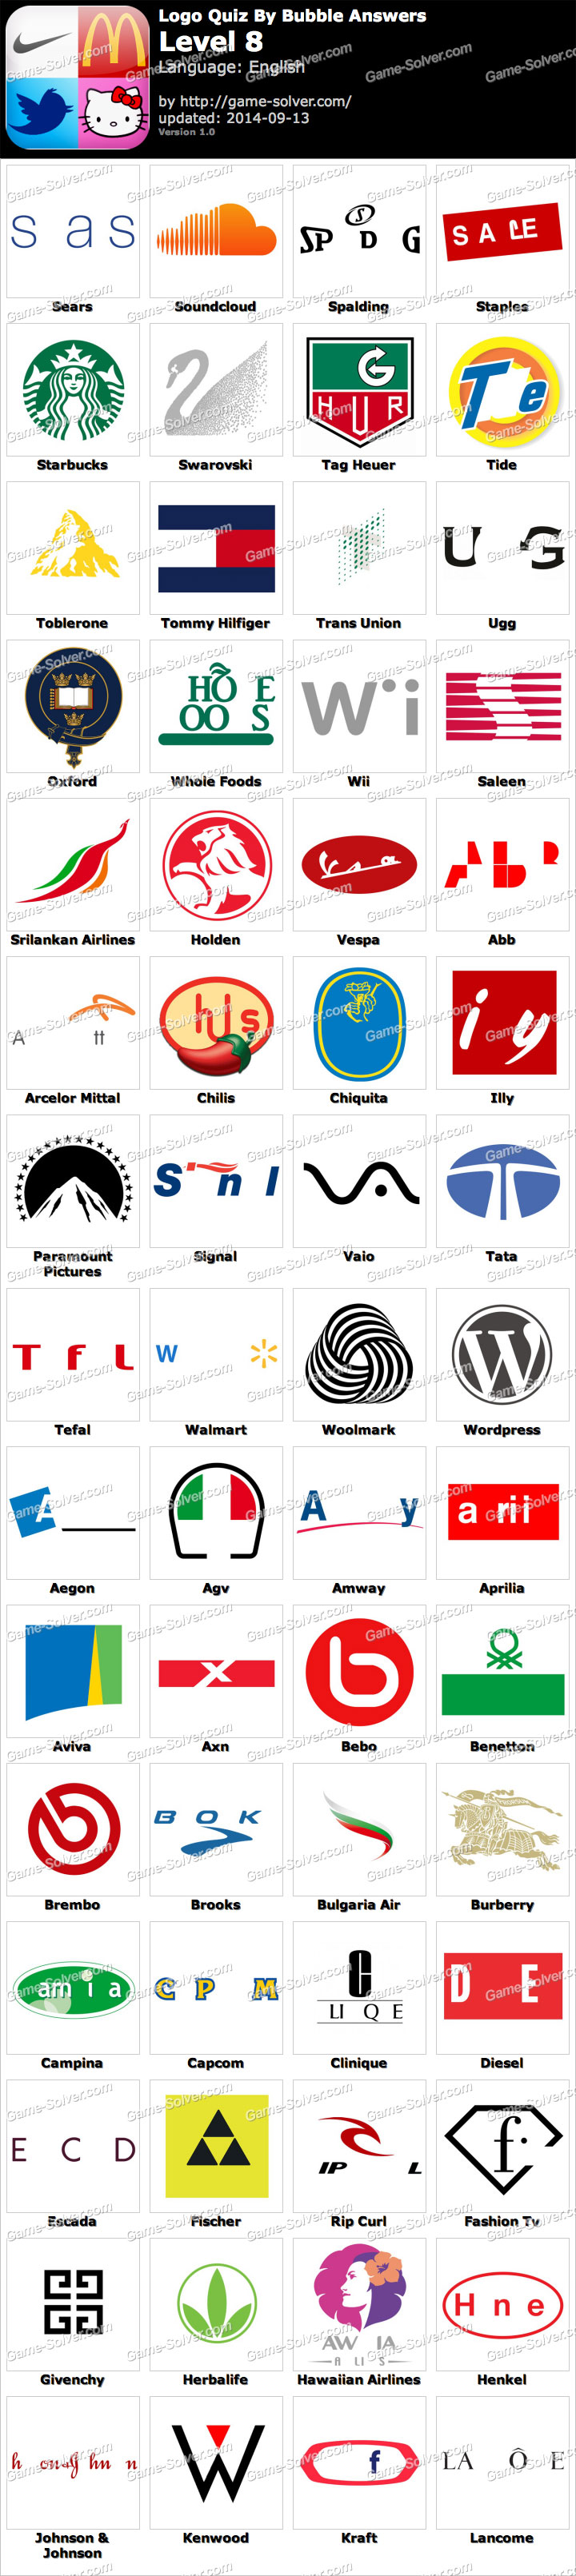 Logo Quiz By Bubble Answers Level 8